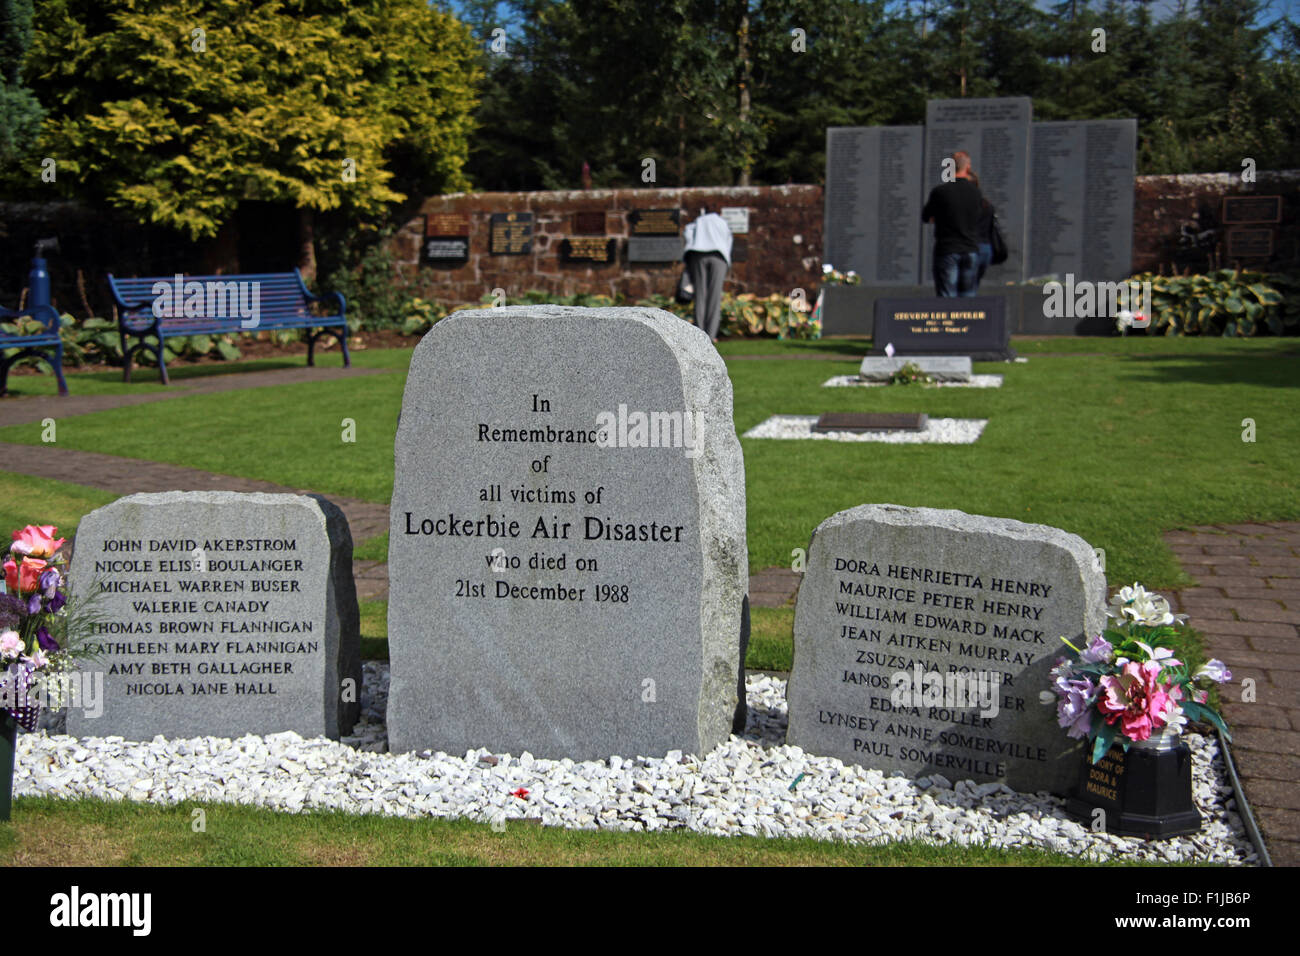 Lockerbie PanAm103 In Rememberance Memorial Visitors Remembering, Scotland Stock Photo